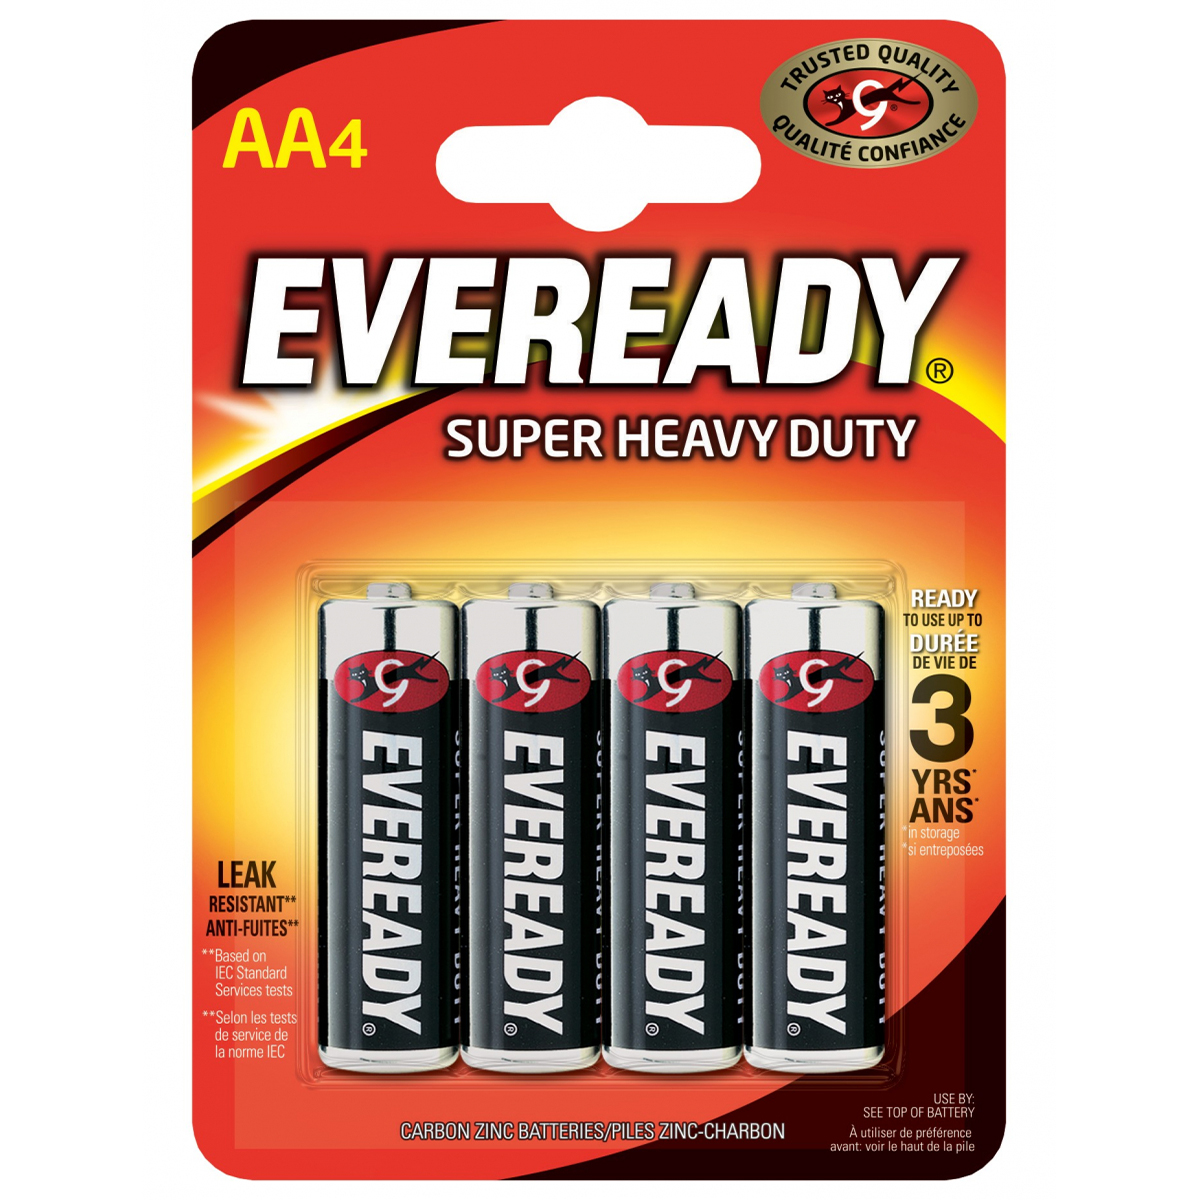 Eveready SHD AAR6 Pil FSB4